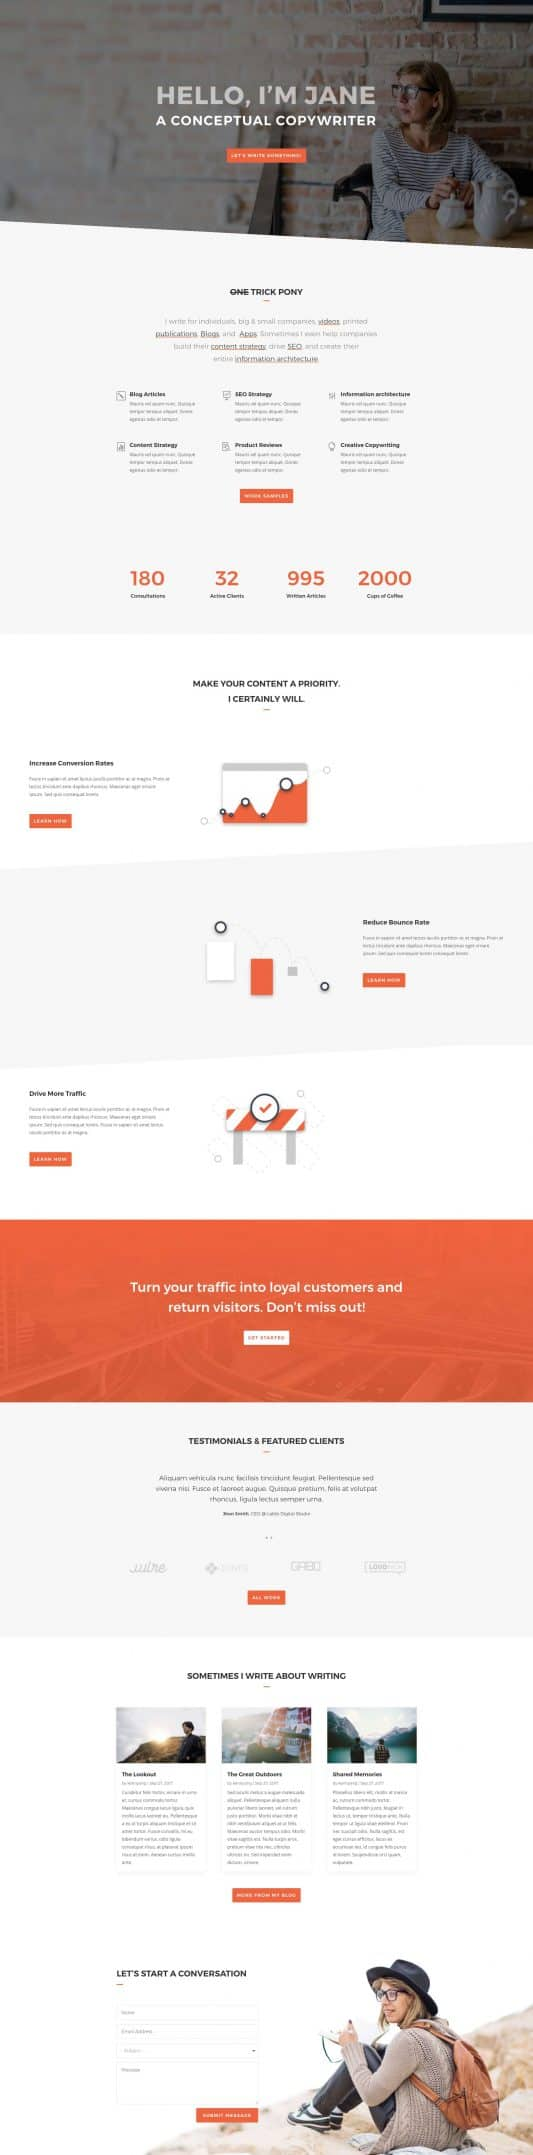 The Copywriter Page Style: Homepage Design 1